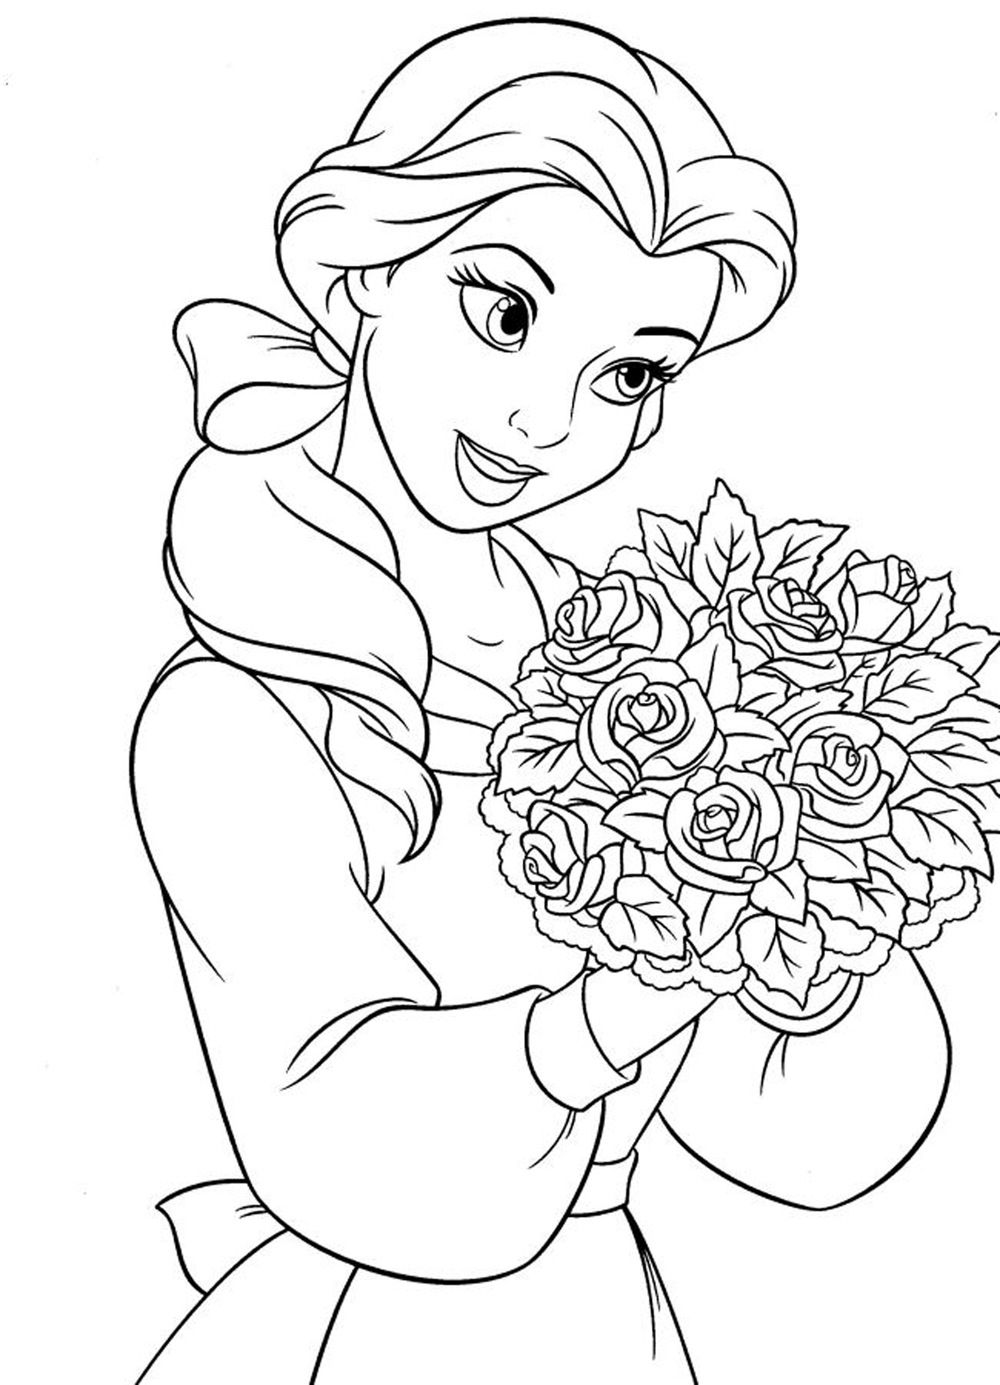 large coloring pages free coloring pages printable pictures to color kids pages large coloring